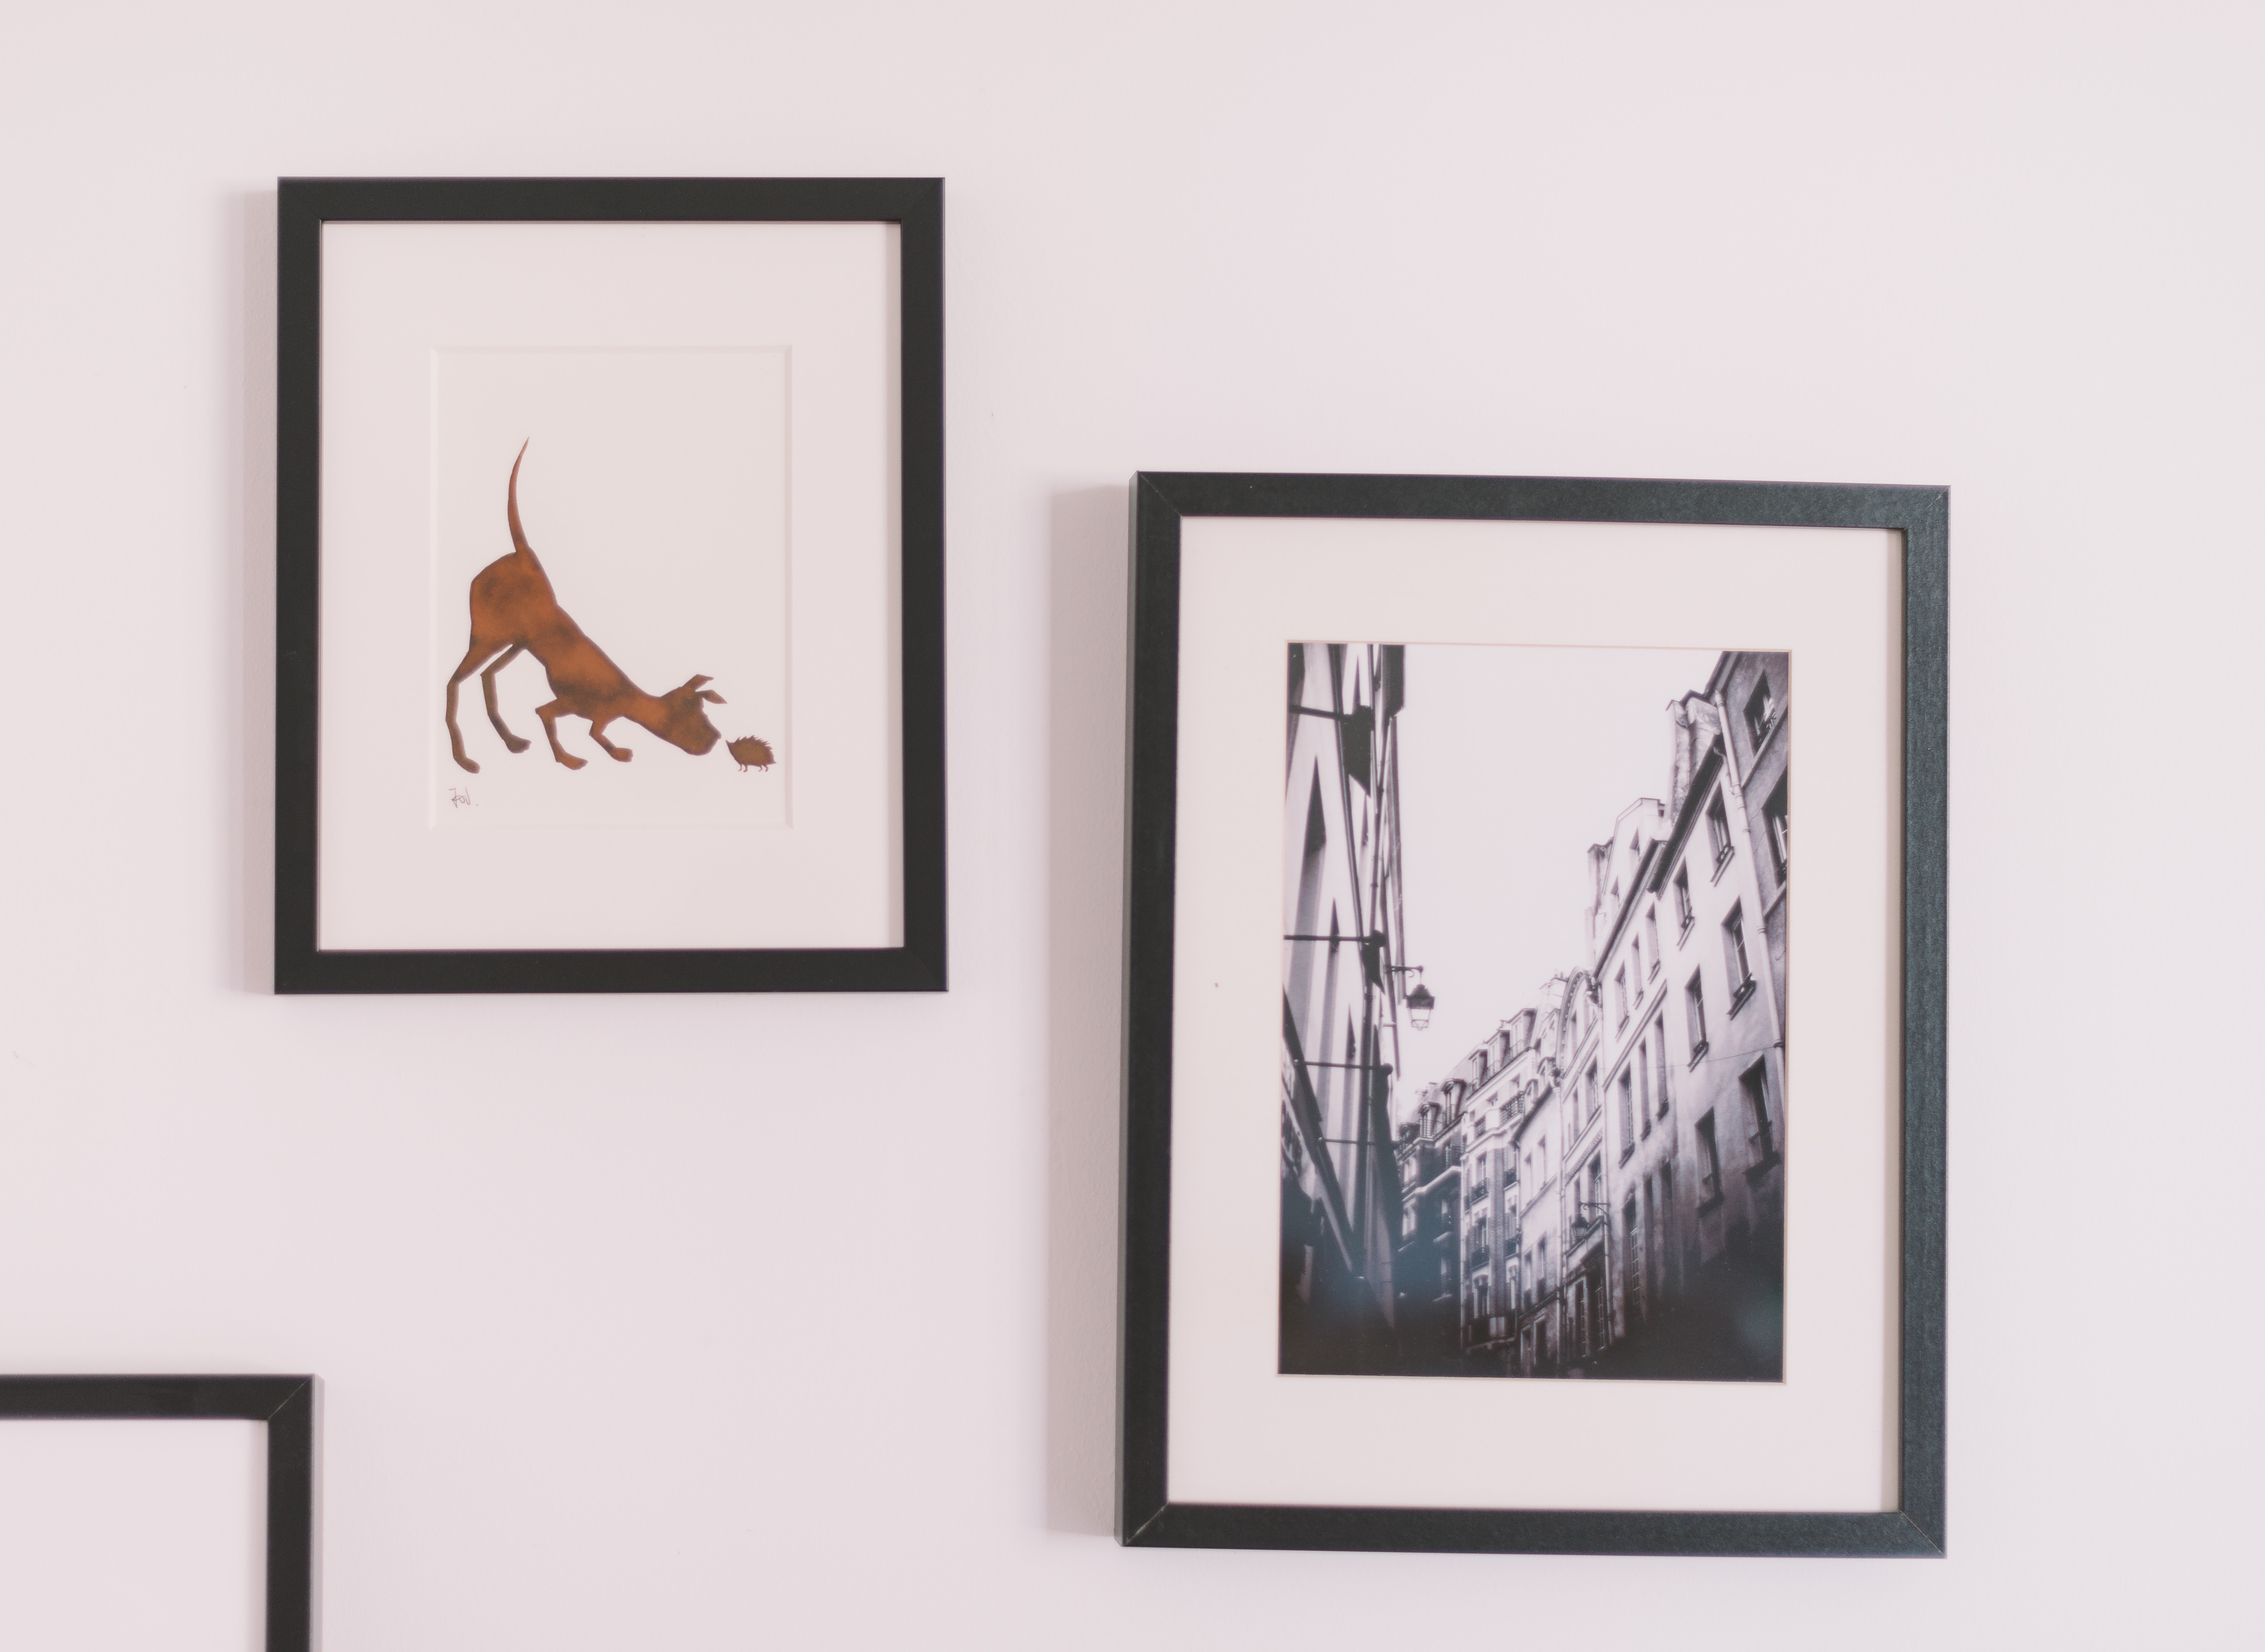 Illustration of dog and black and white photo of urban buildings in frames on white wall